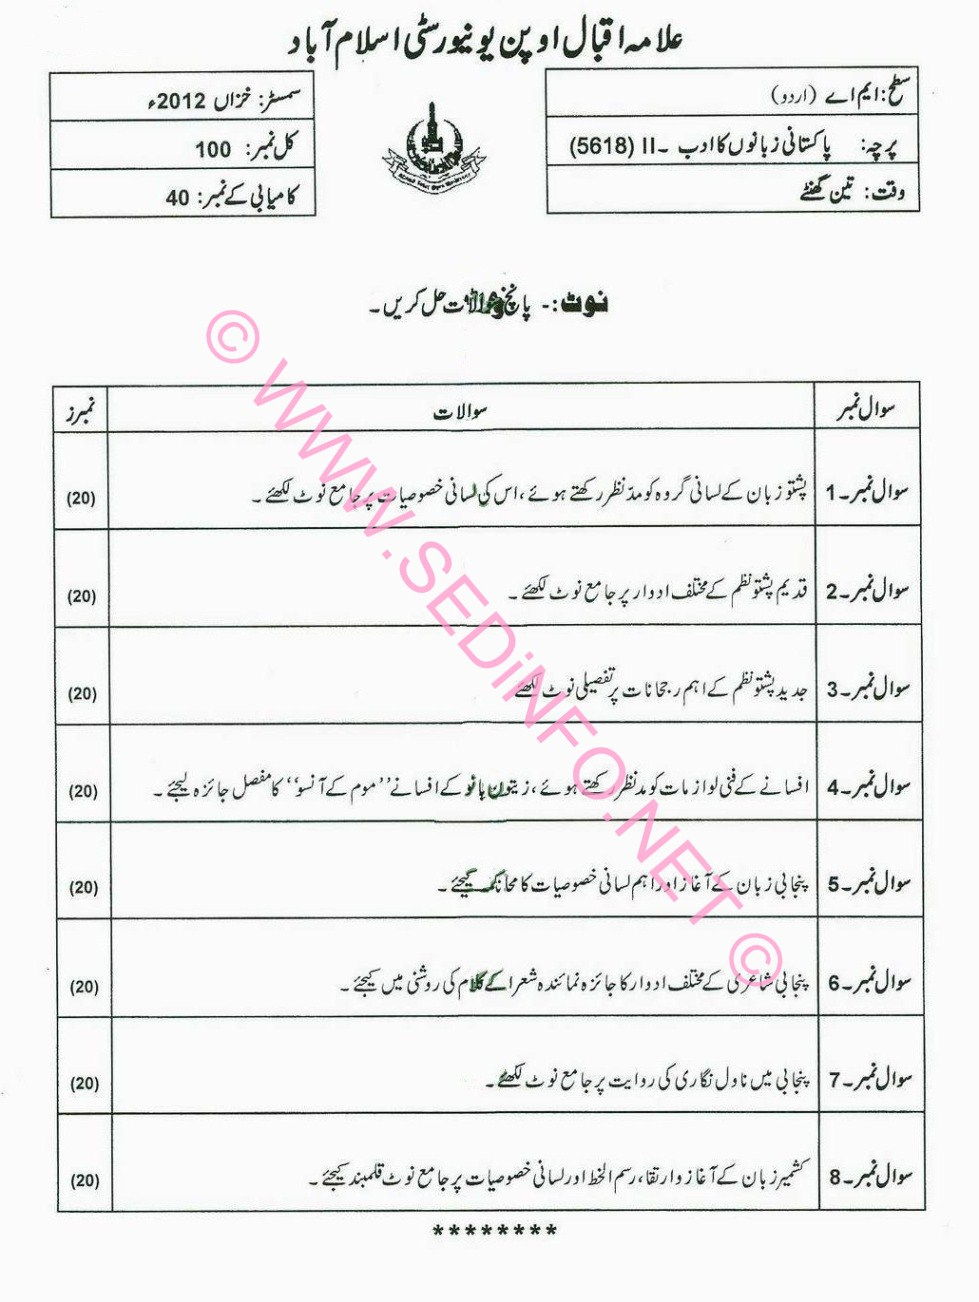 MA Urdu Code 5618 AIOU Past Papers A2012